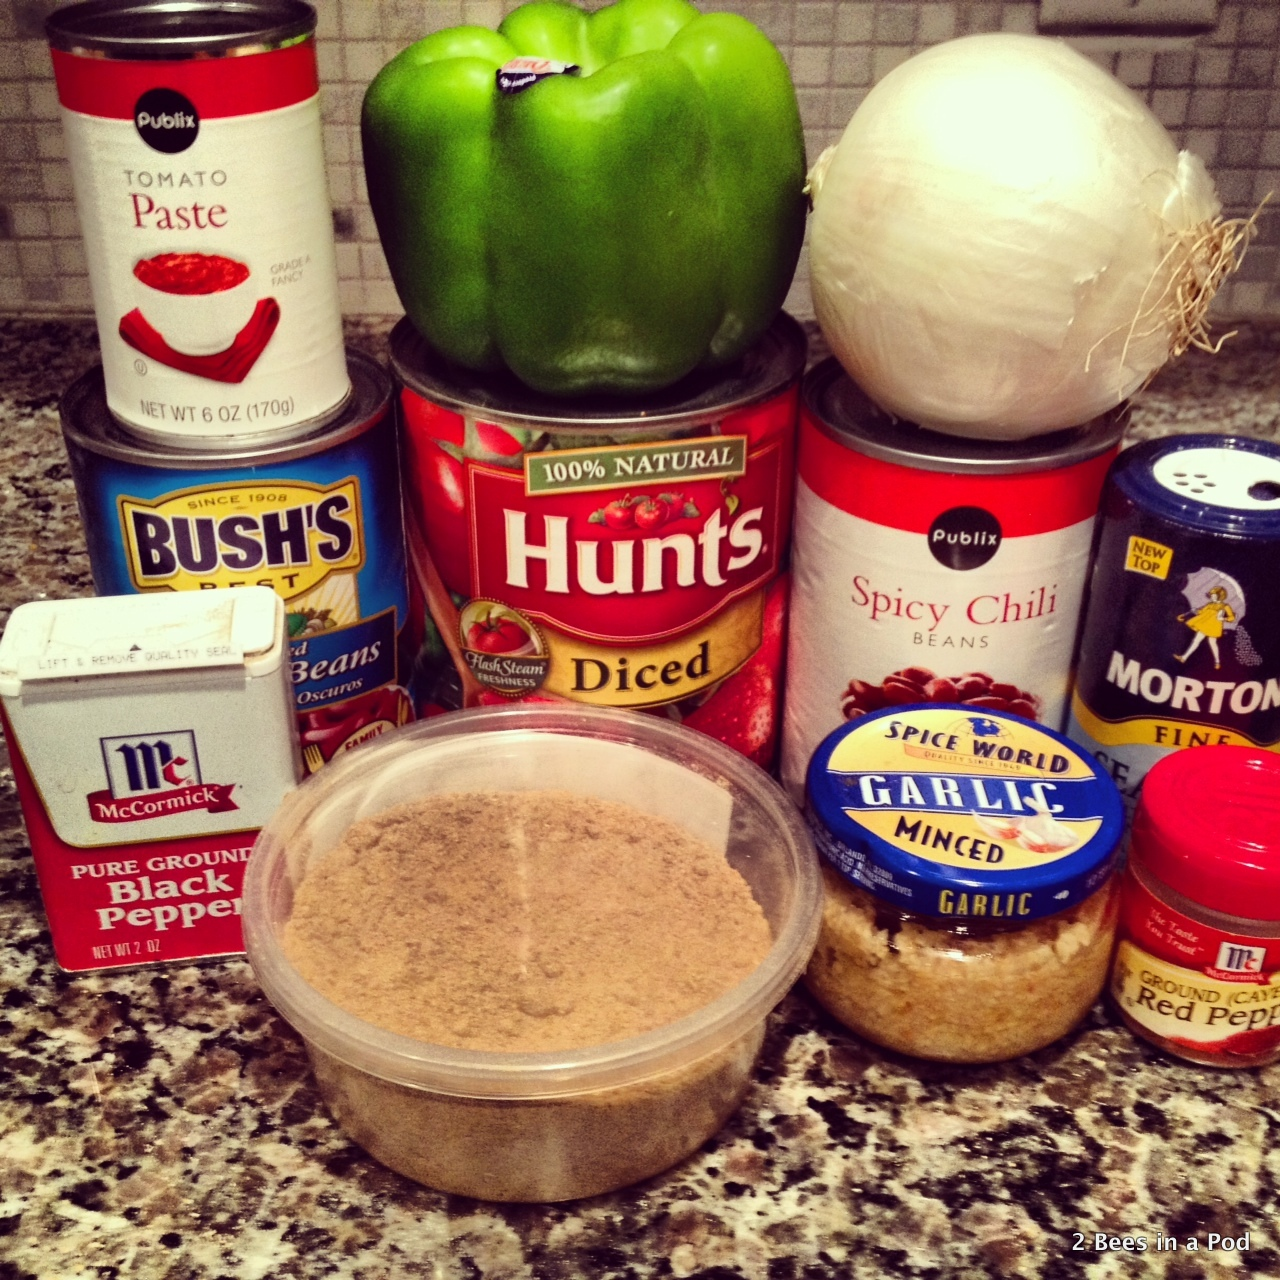 1-Ingredients for homemade chili with diced tomatoes, kidney beans, chili beans, onion, green pepper, cumin